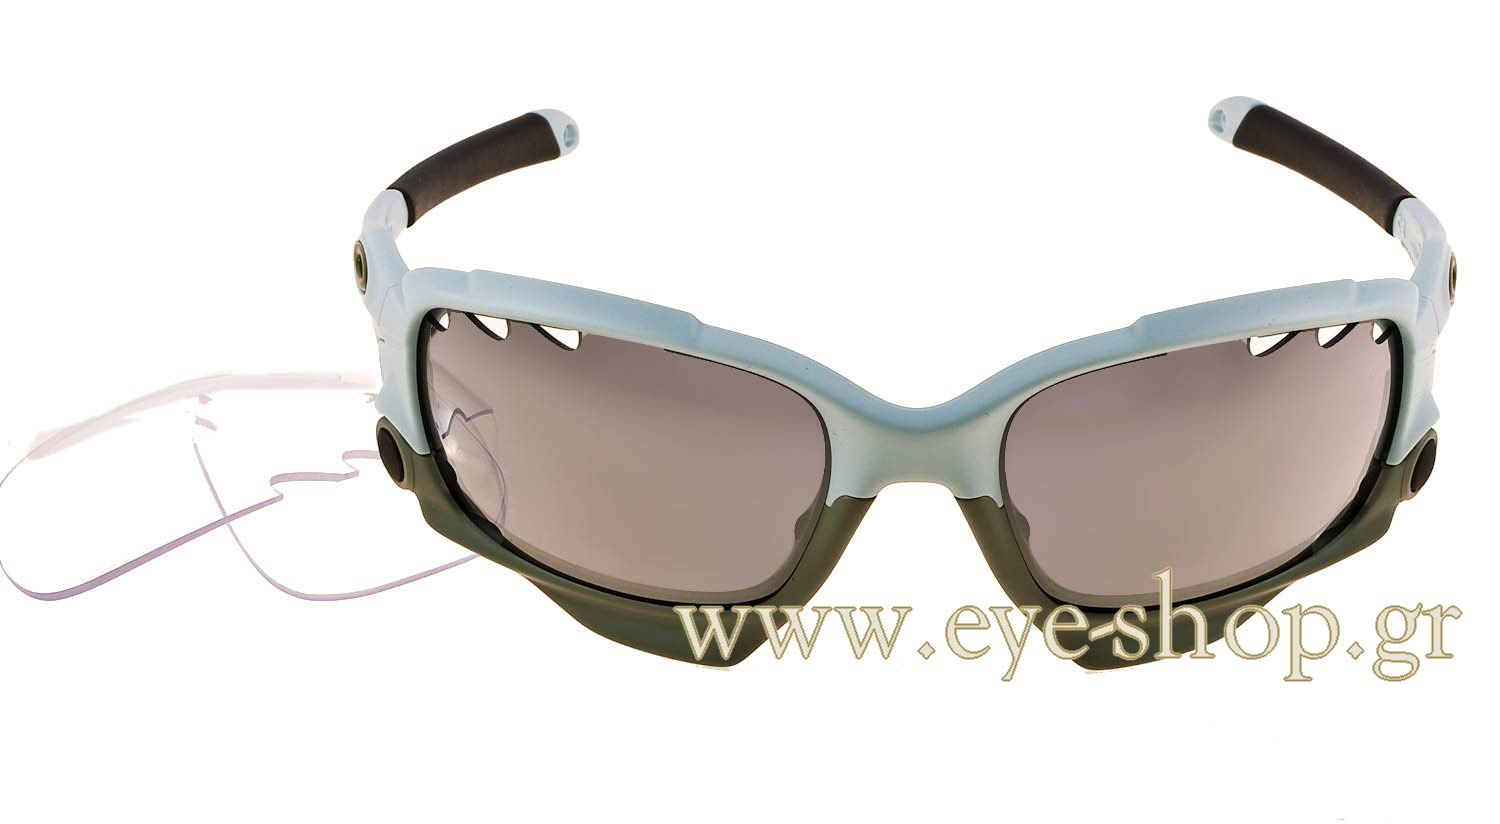 4429411f36 Oakley Sunglasses Special South Africa